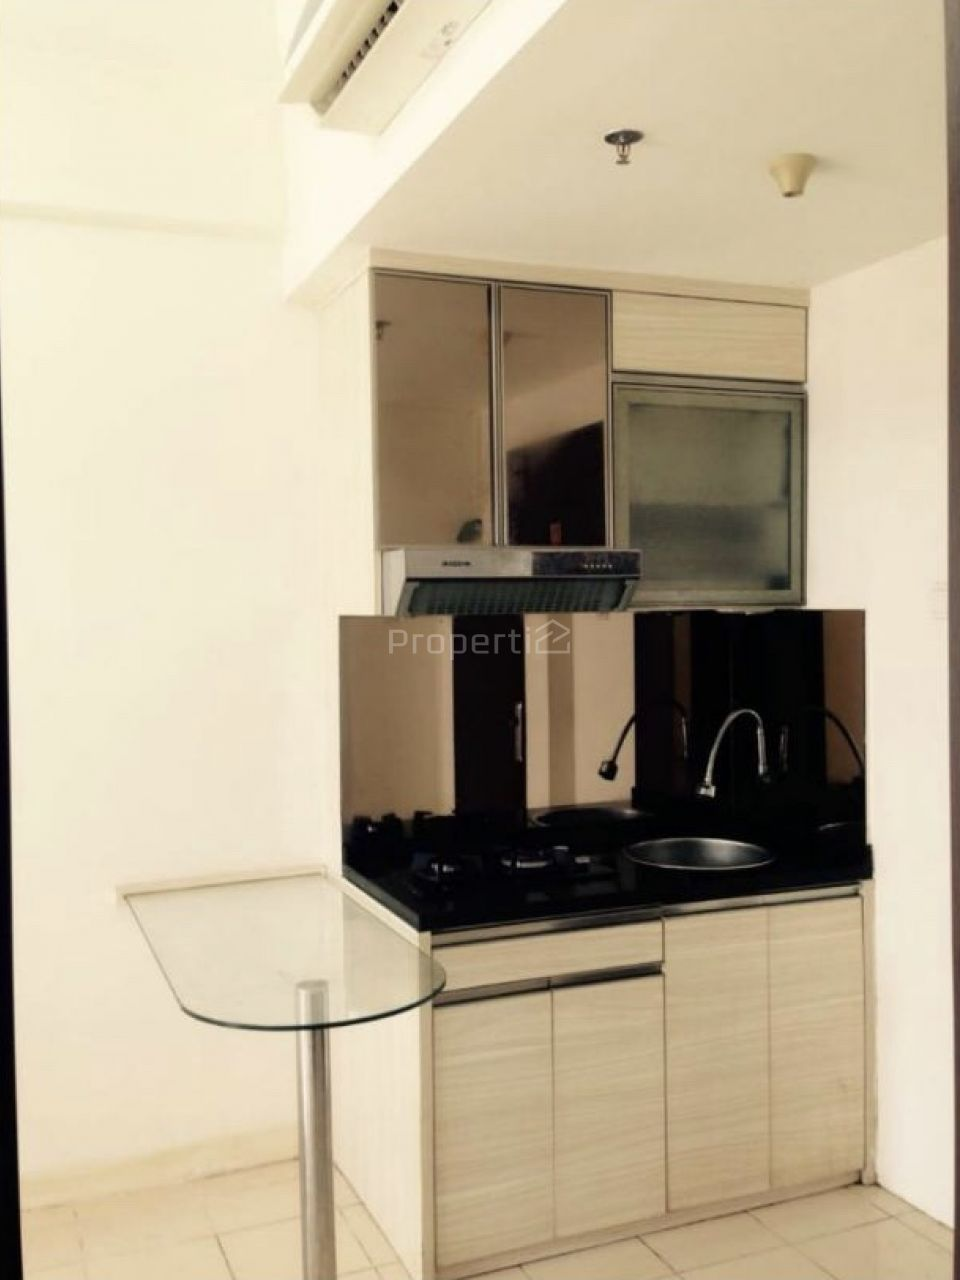 2BR Apartment Unit at Aa Tower Puri Park View, 18th Floor, DKI Jakarta